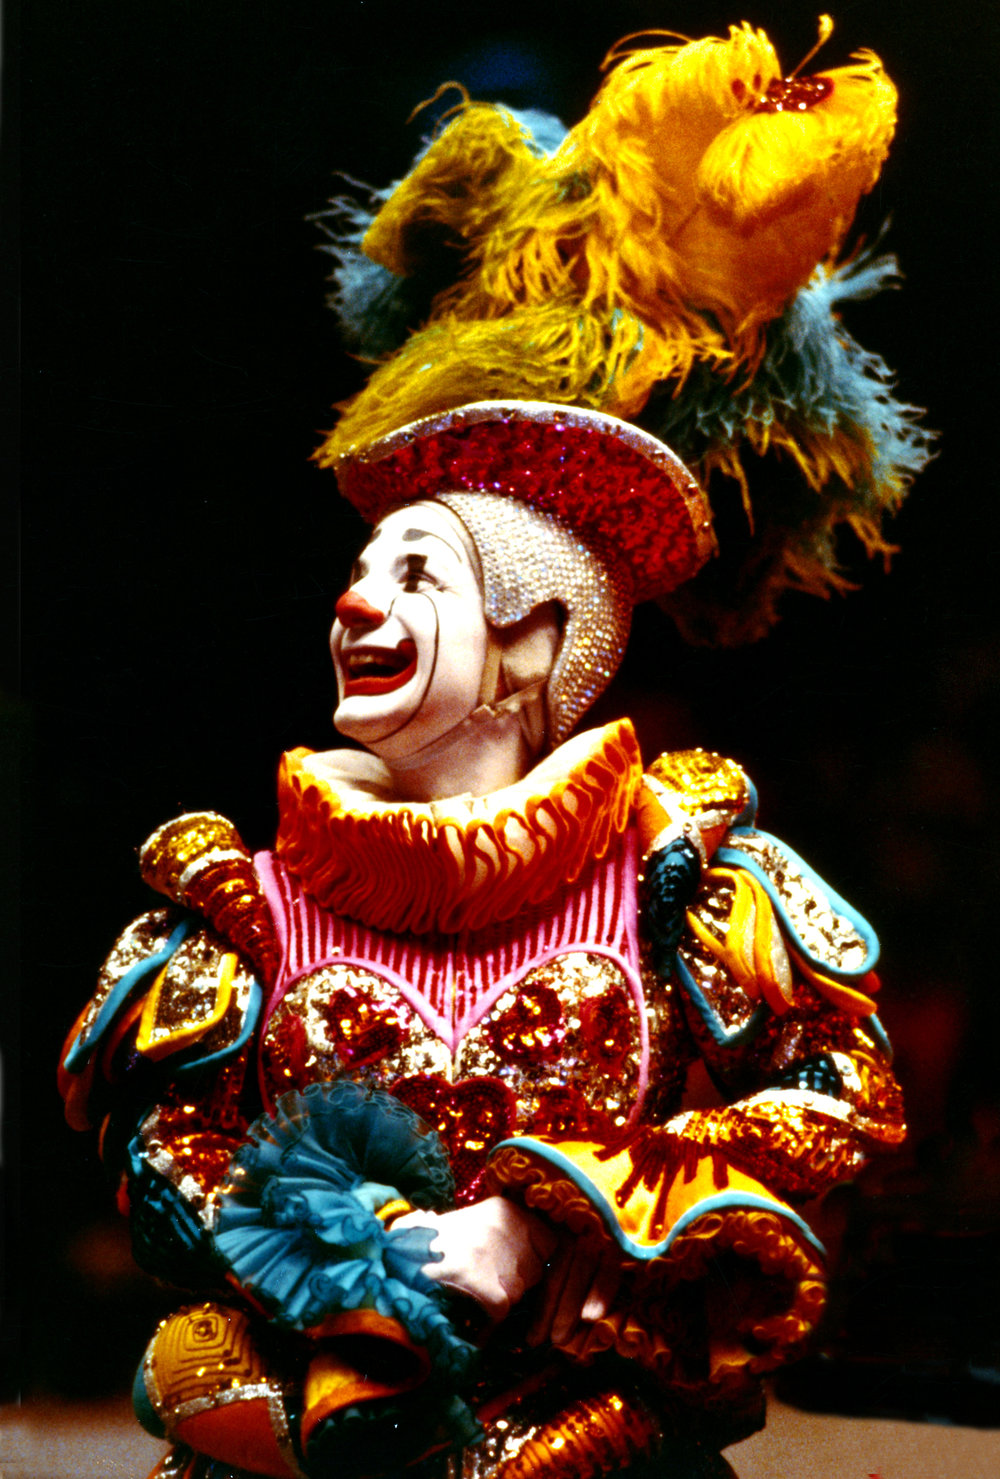 PEGGY THE RINGLING CLOWN